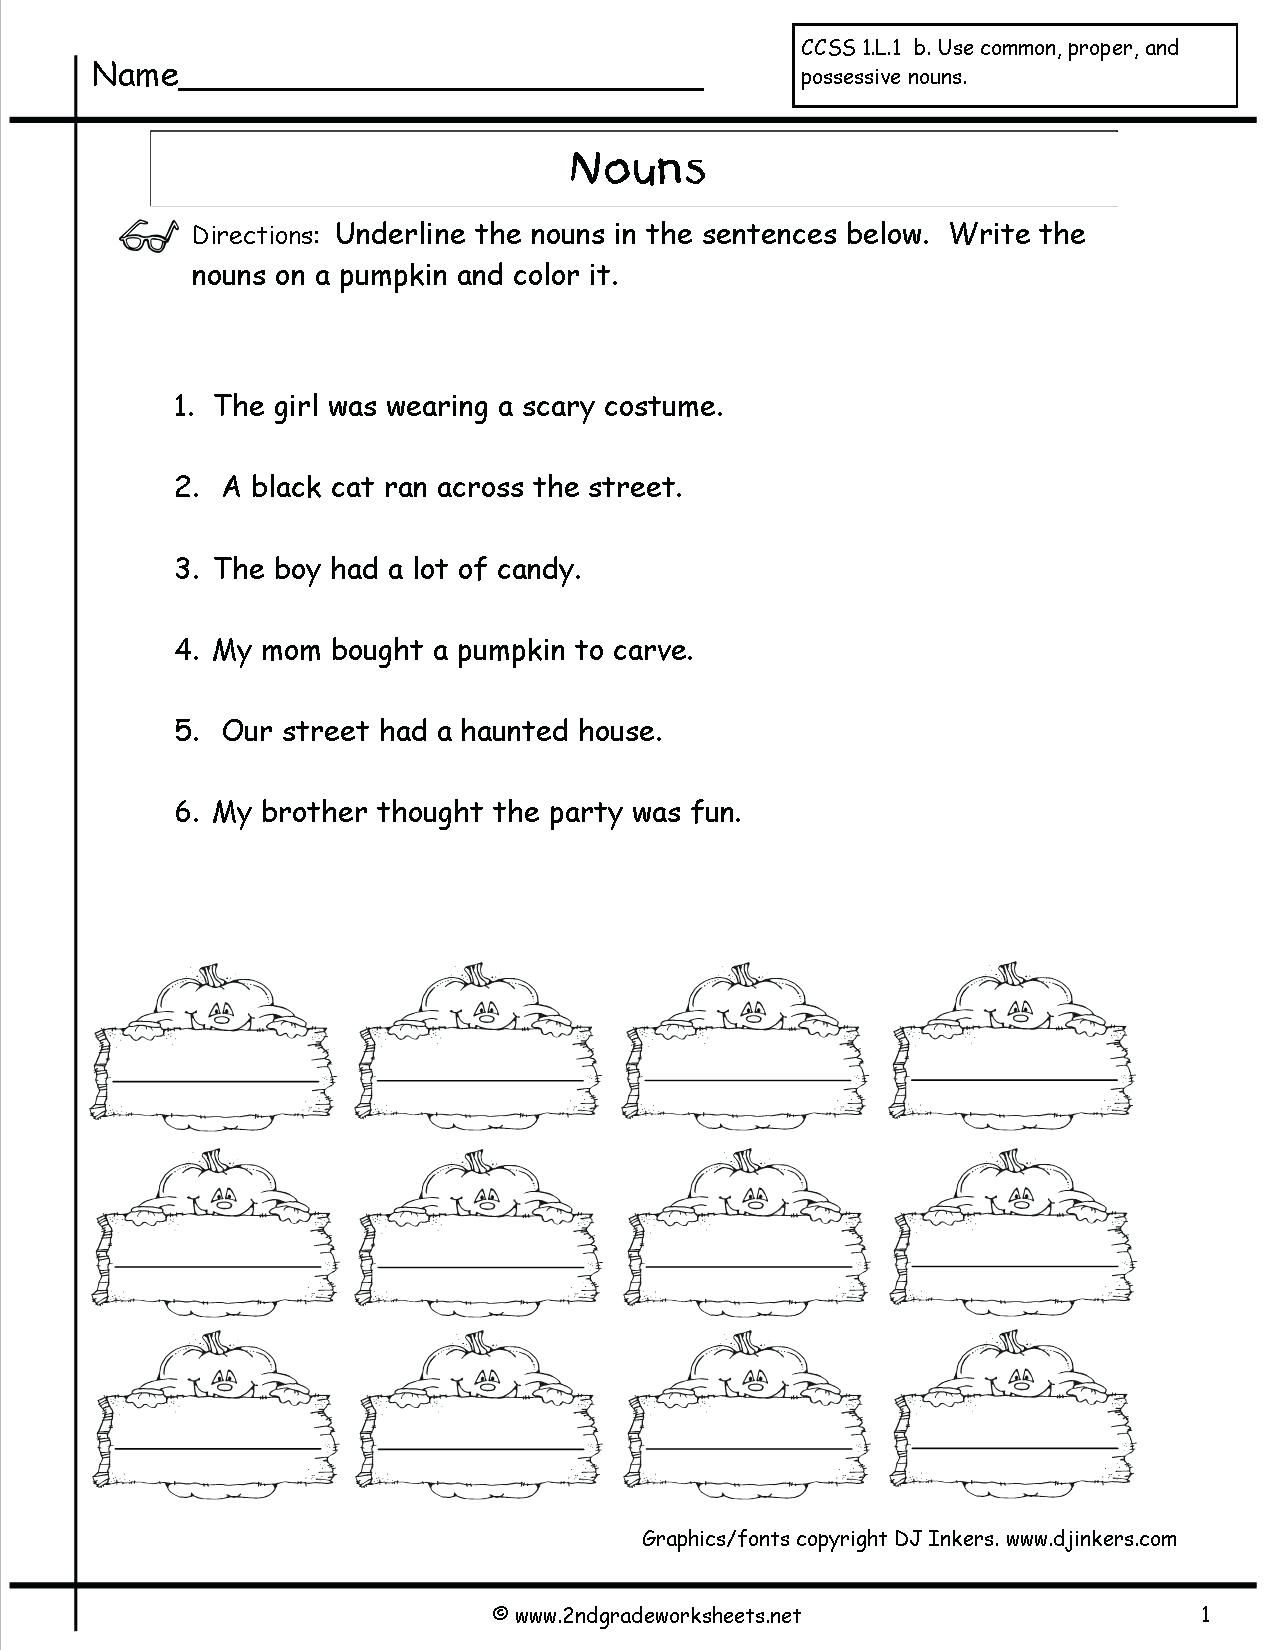 37 Clever Possessive Nouns Worksheets Design